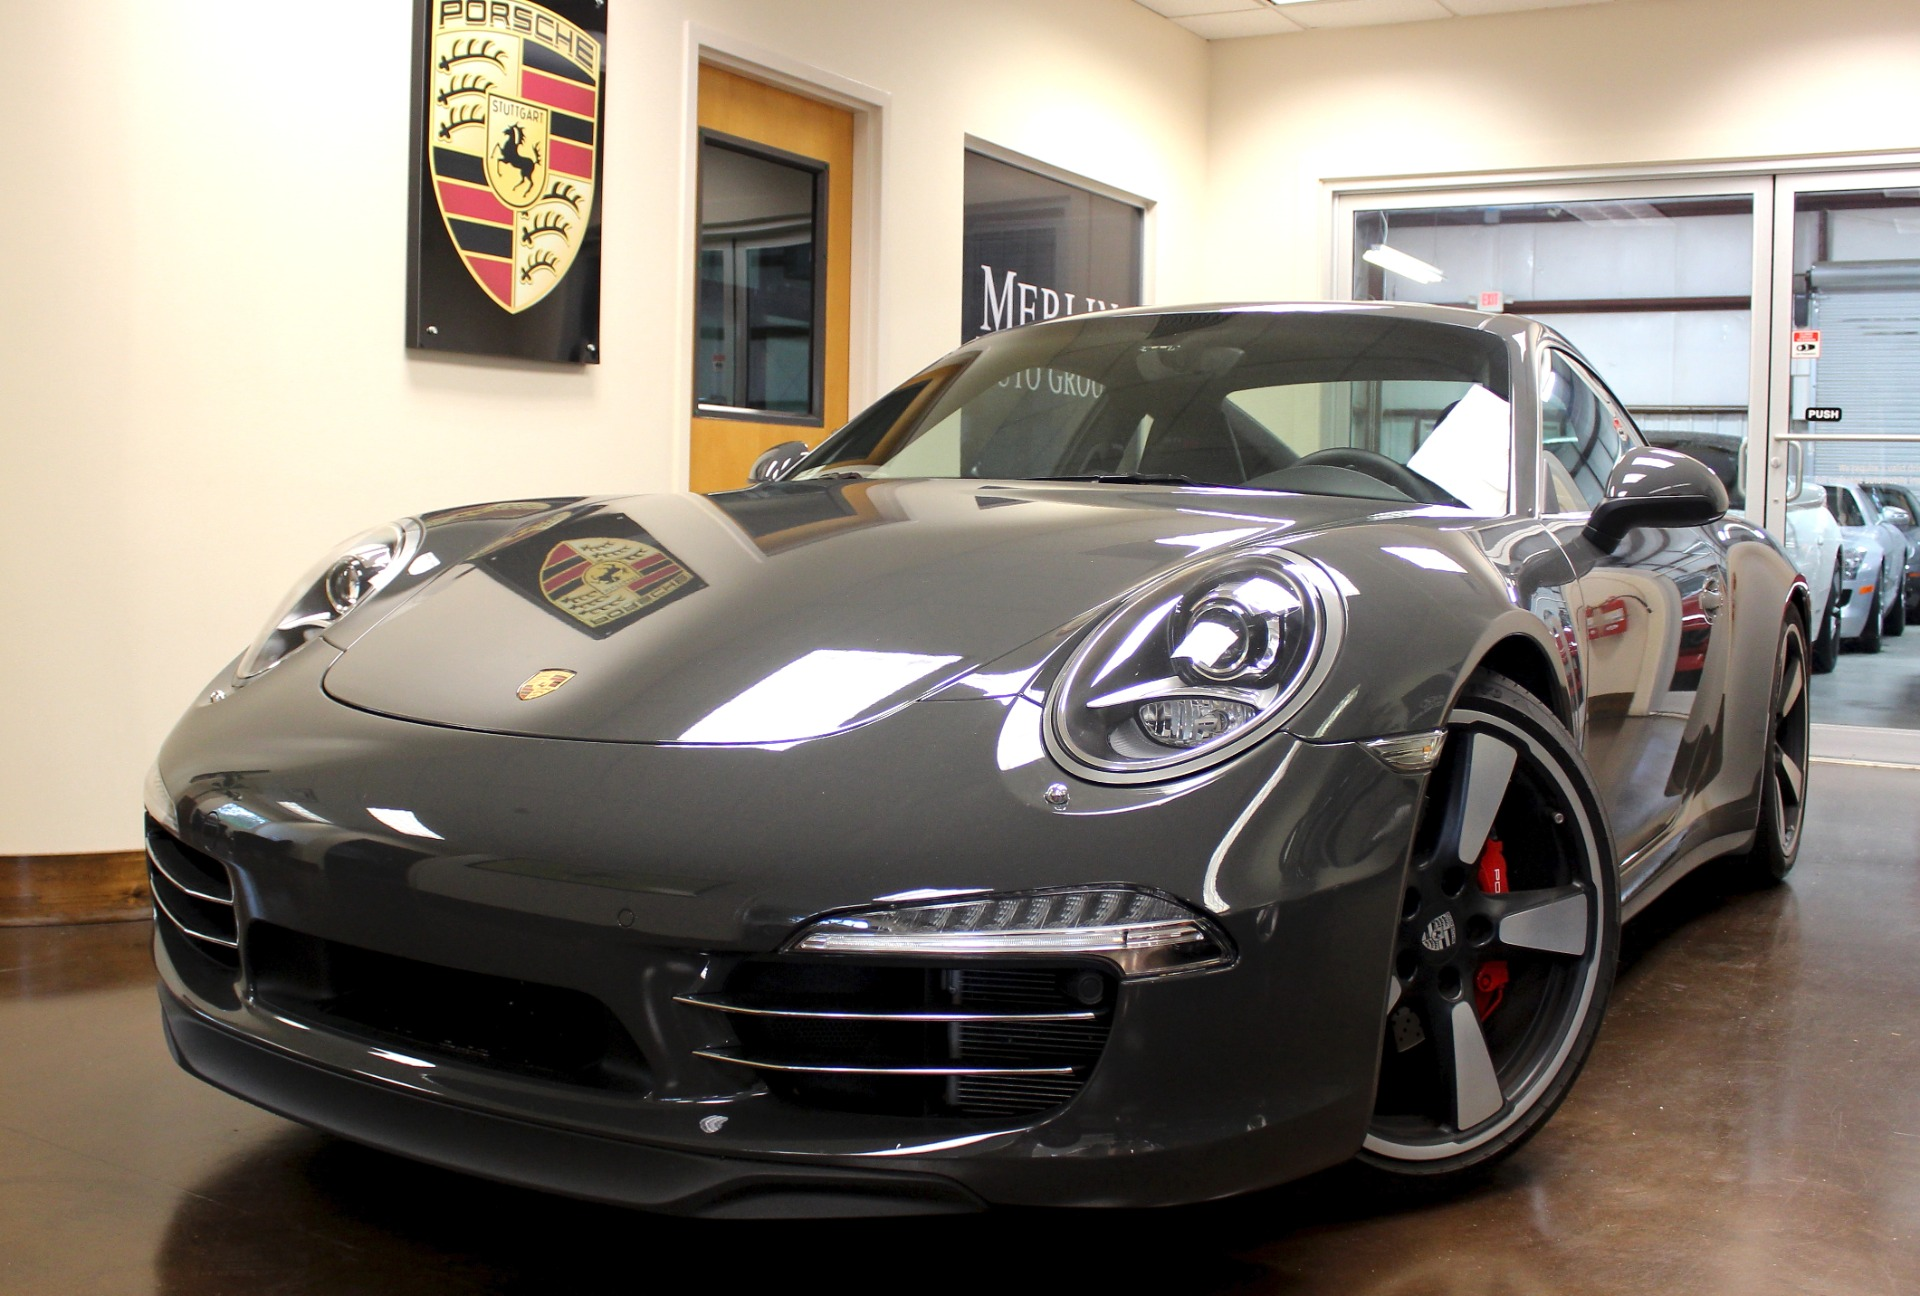 used 2014 porsche 911 stock p3347a ultra luxury car from merlin rh merlinautogroup com 2015 porsche 911 owners manual 2014 porsche 911 gt3 owners manual